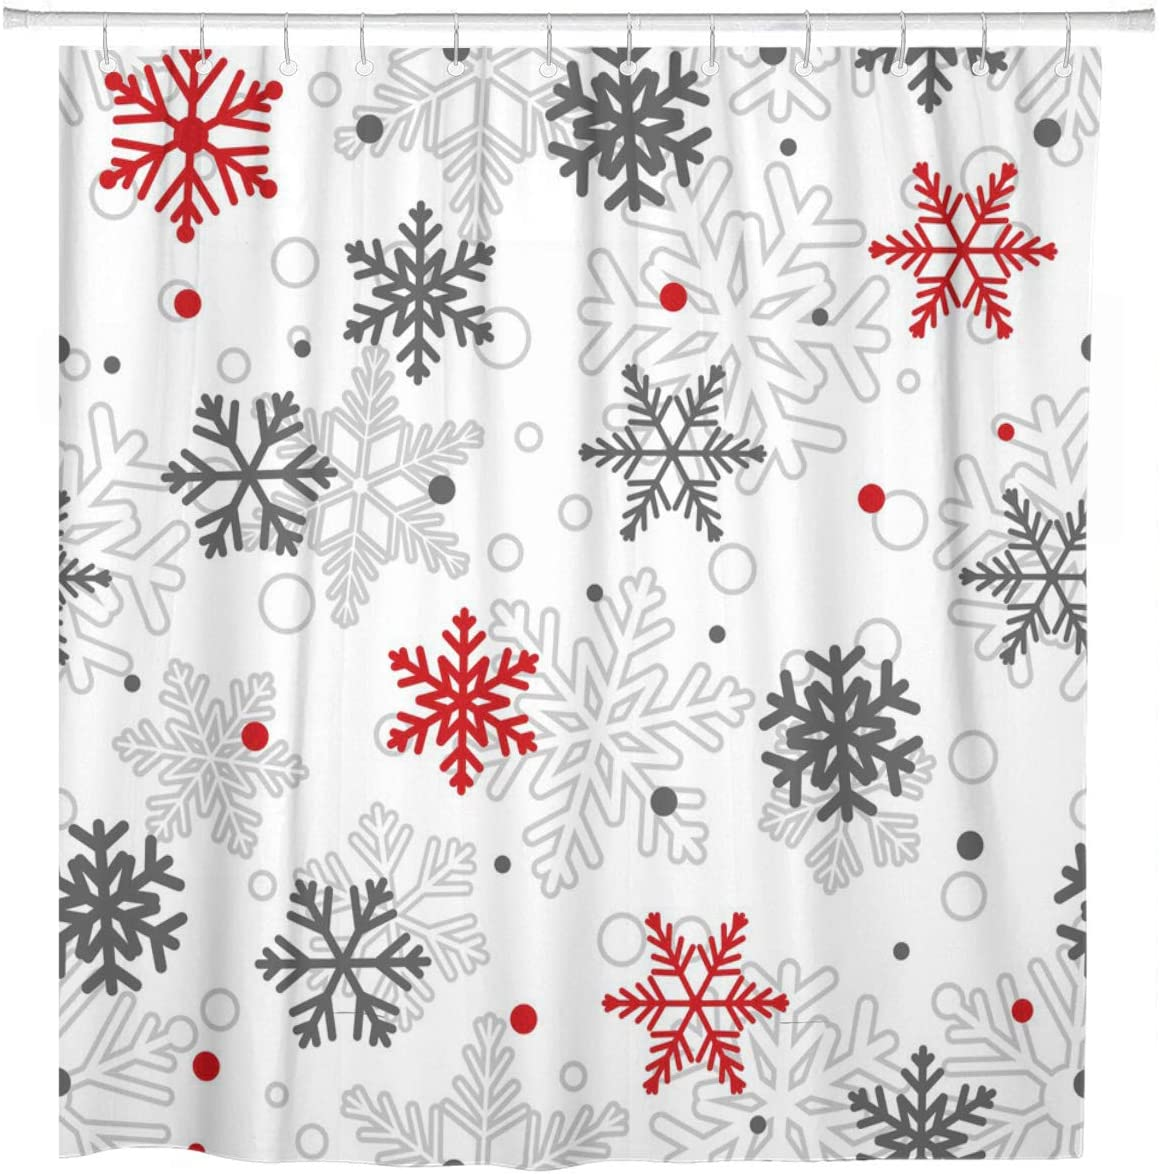 ArtSocket Shower Curtain Christmas of Big and Small Snowflakes Red Gray Home Bathroom Decor Polyester Fabric Waterproof 72 x 72 Inches Set with Hooks